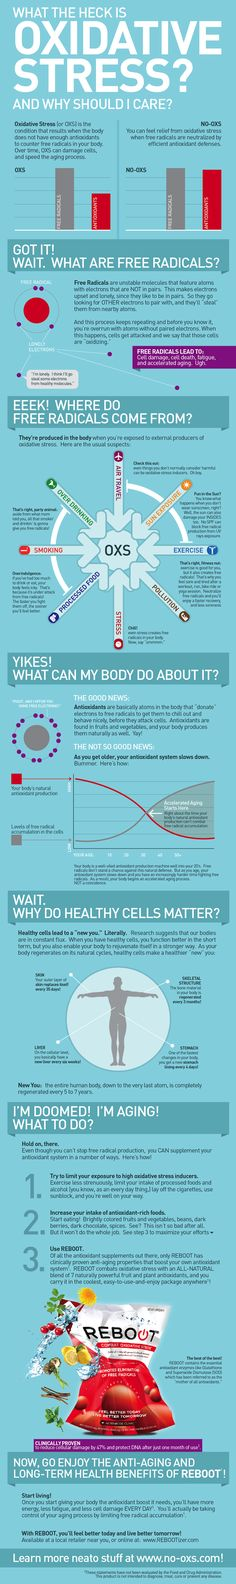 I dont take antioxidants, I let my body make them!!!    #REBOOT oxidative stress and #antiaging infographic www.mylifevantage.com/javier